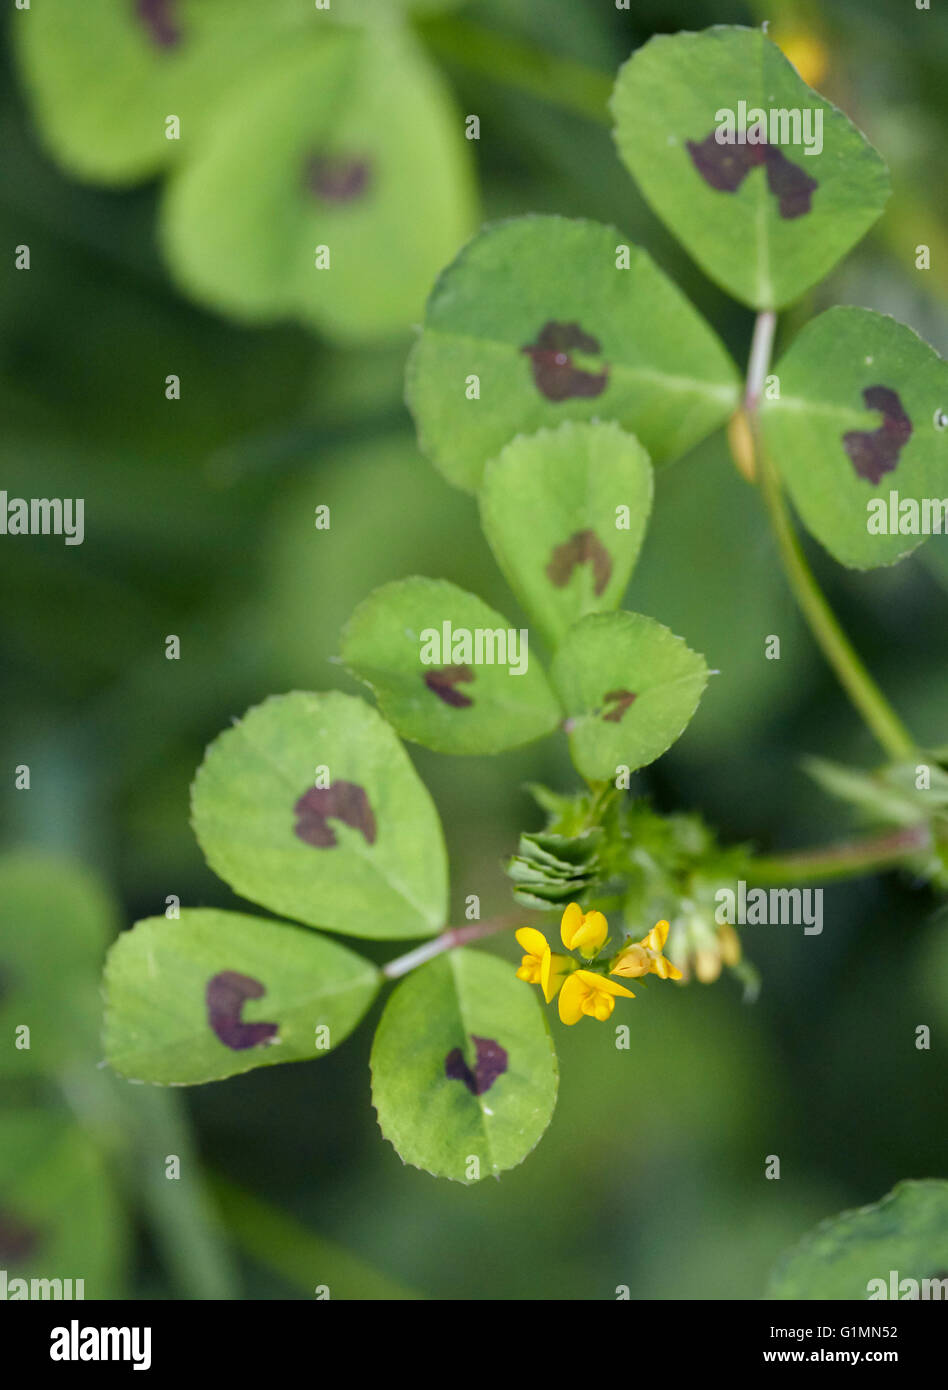 Spotted Medick.  Hurst Meadows, West Molesey, Surrey, England. - Stock Image